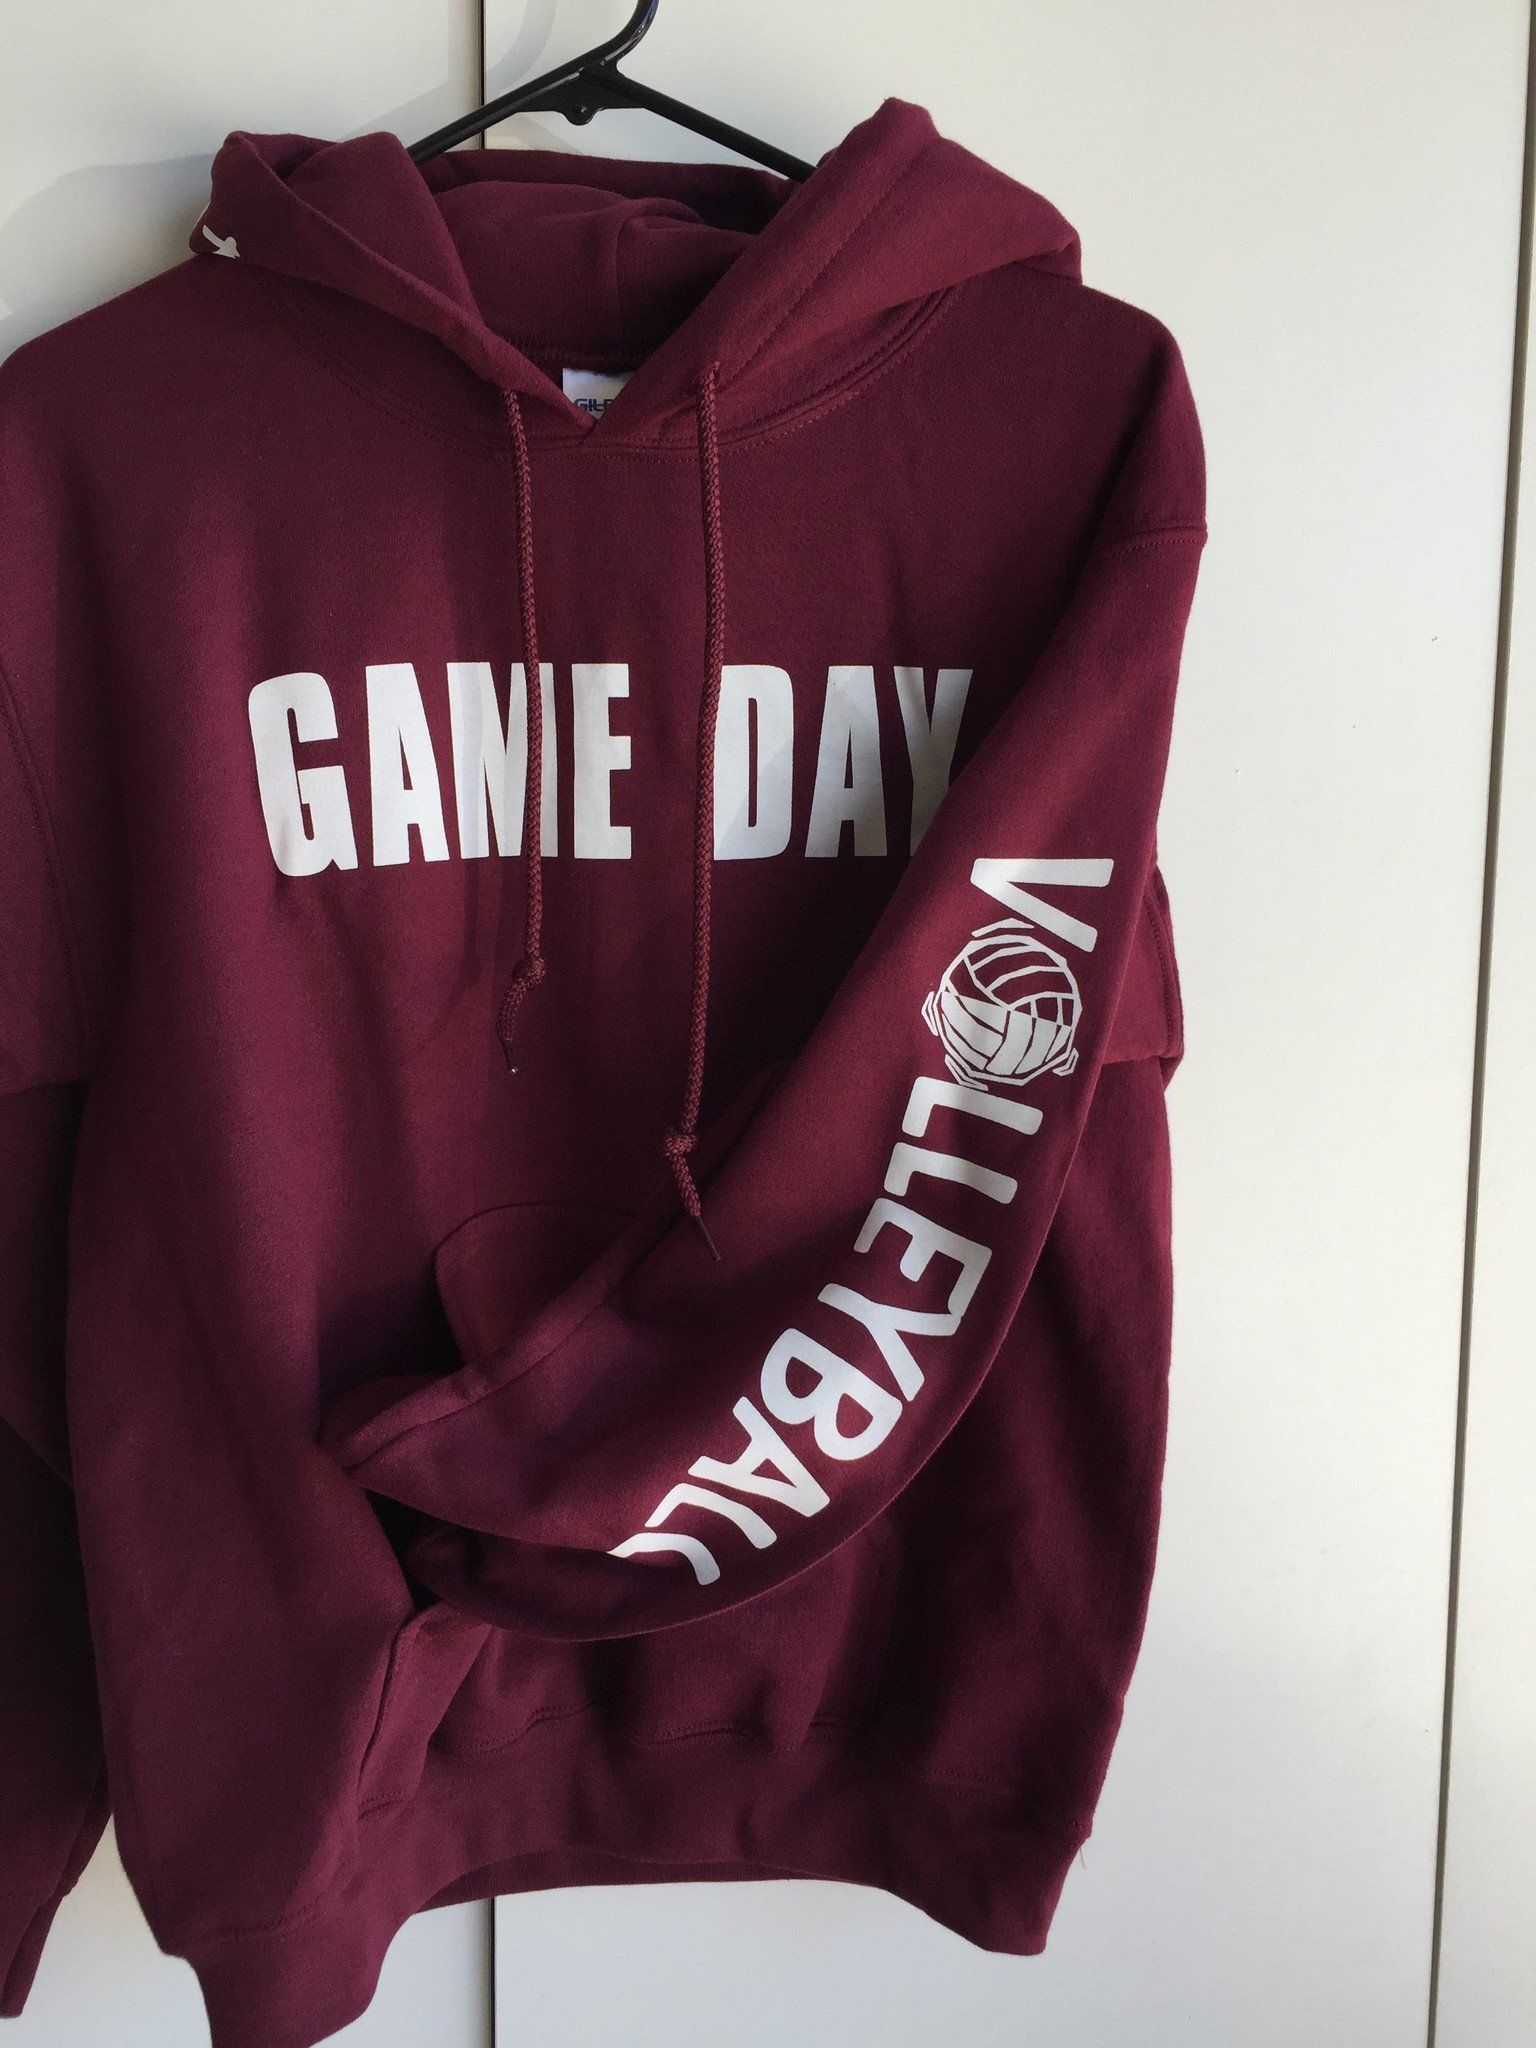 Game Day Hooded Volleyball Sweatshirt With Headband Bracelet And Hair Tie Volleyball Outfits Volleyball Sweatshirts Volleyball Shirts